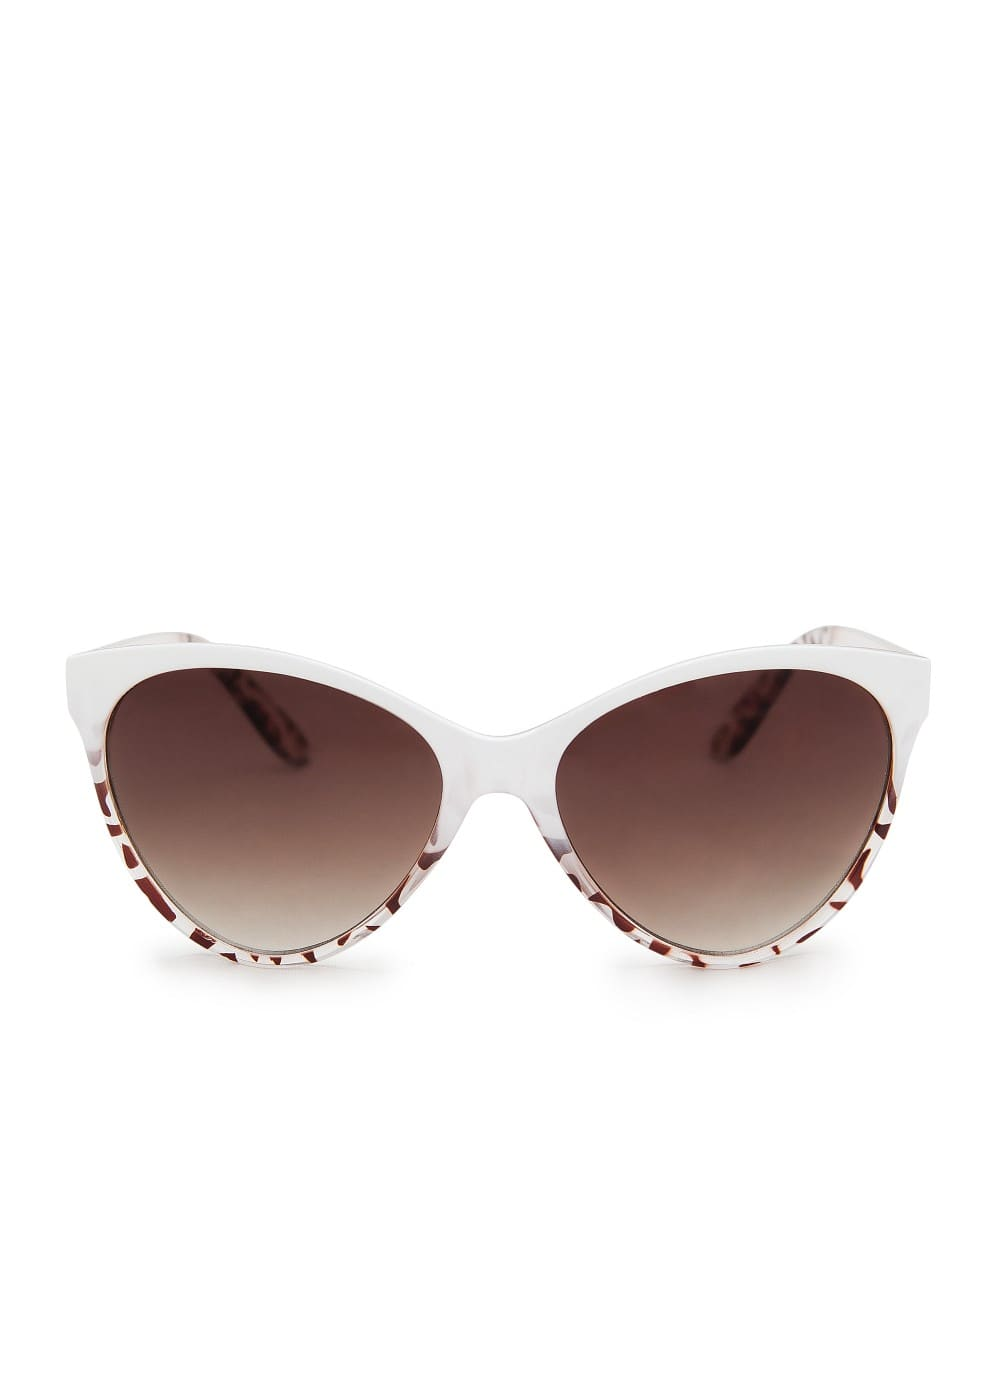 Degradé cat-eye sunglasses